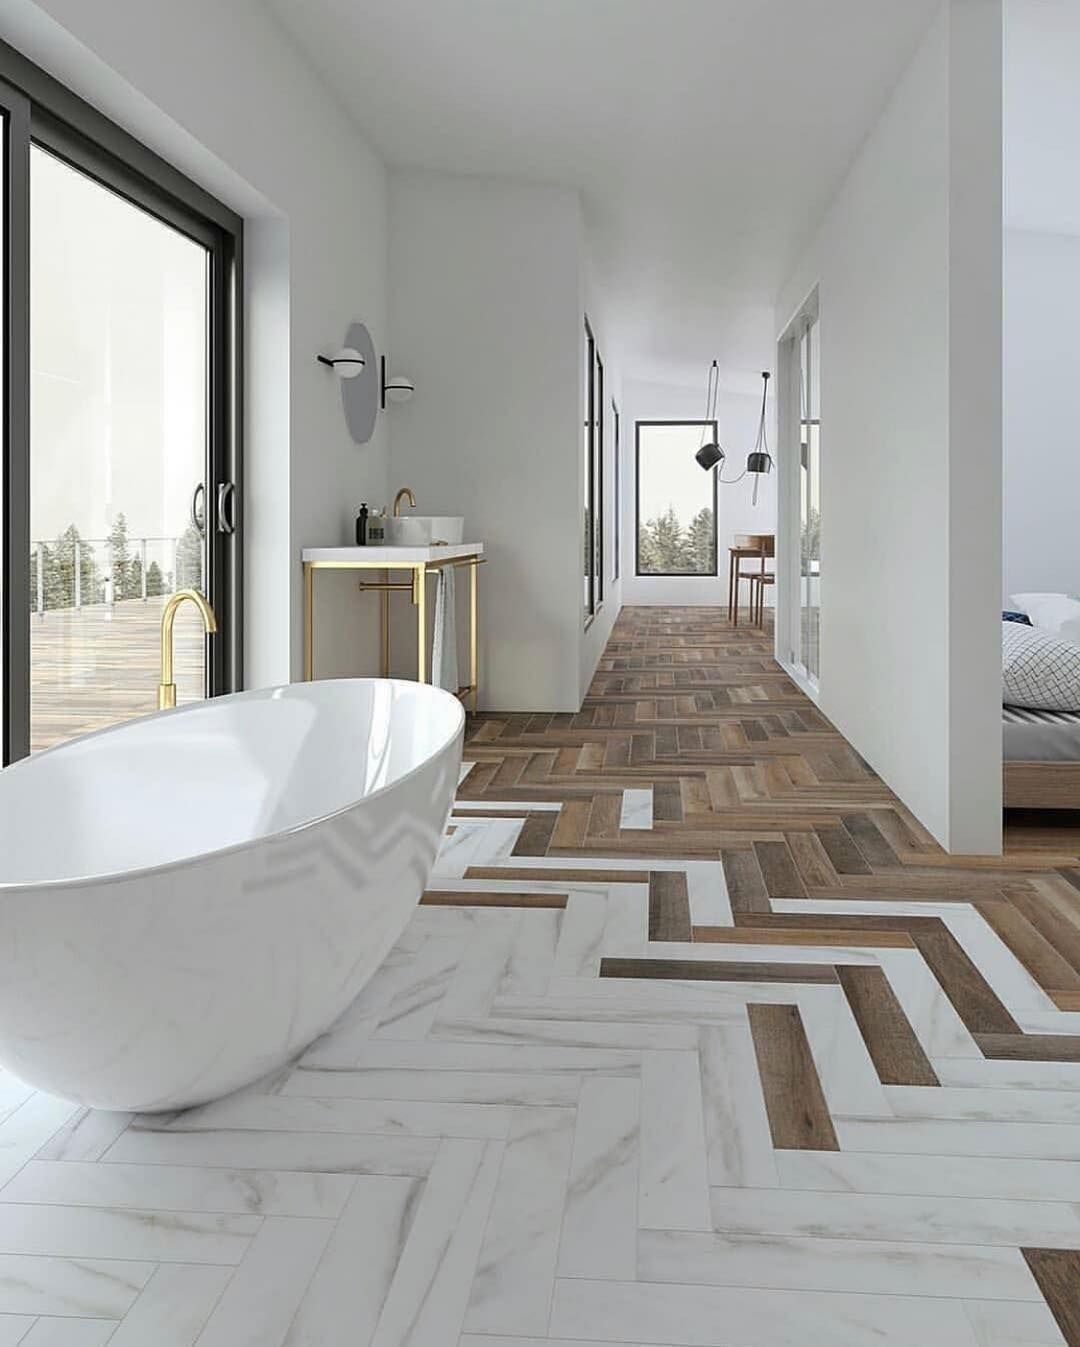 Perfect Light Wood For Your Interior Your Home Lets Check Here Tips And Trik Design Floor Wood Beautiful Bathrooms Floor Design Modern Bathroom Design